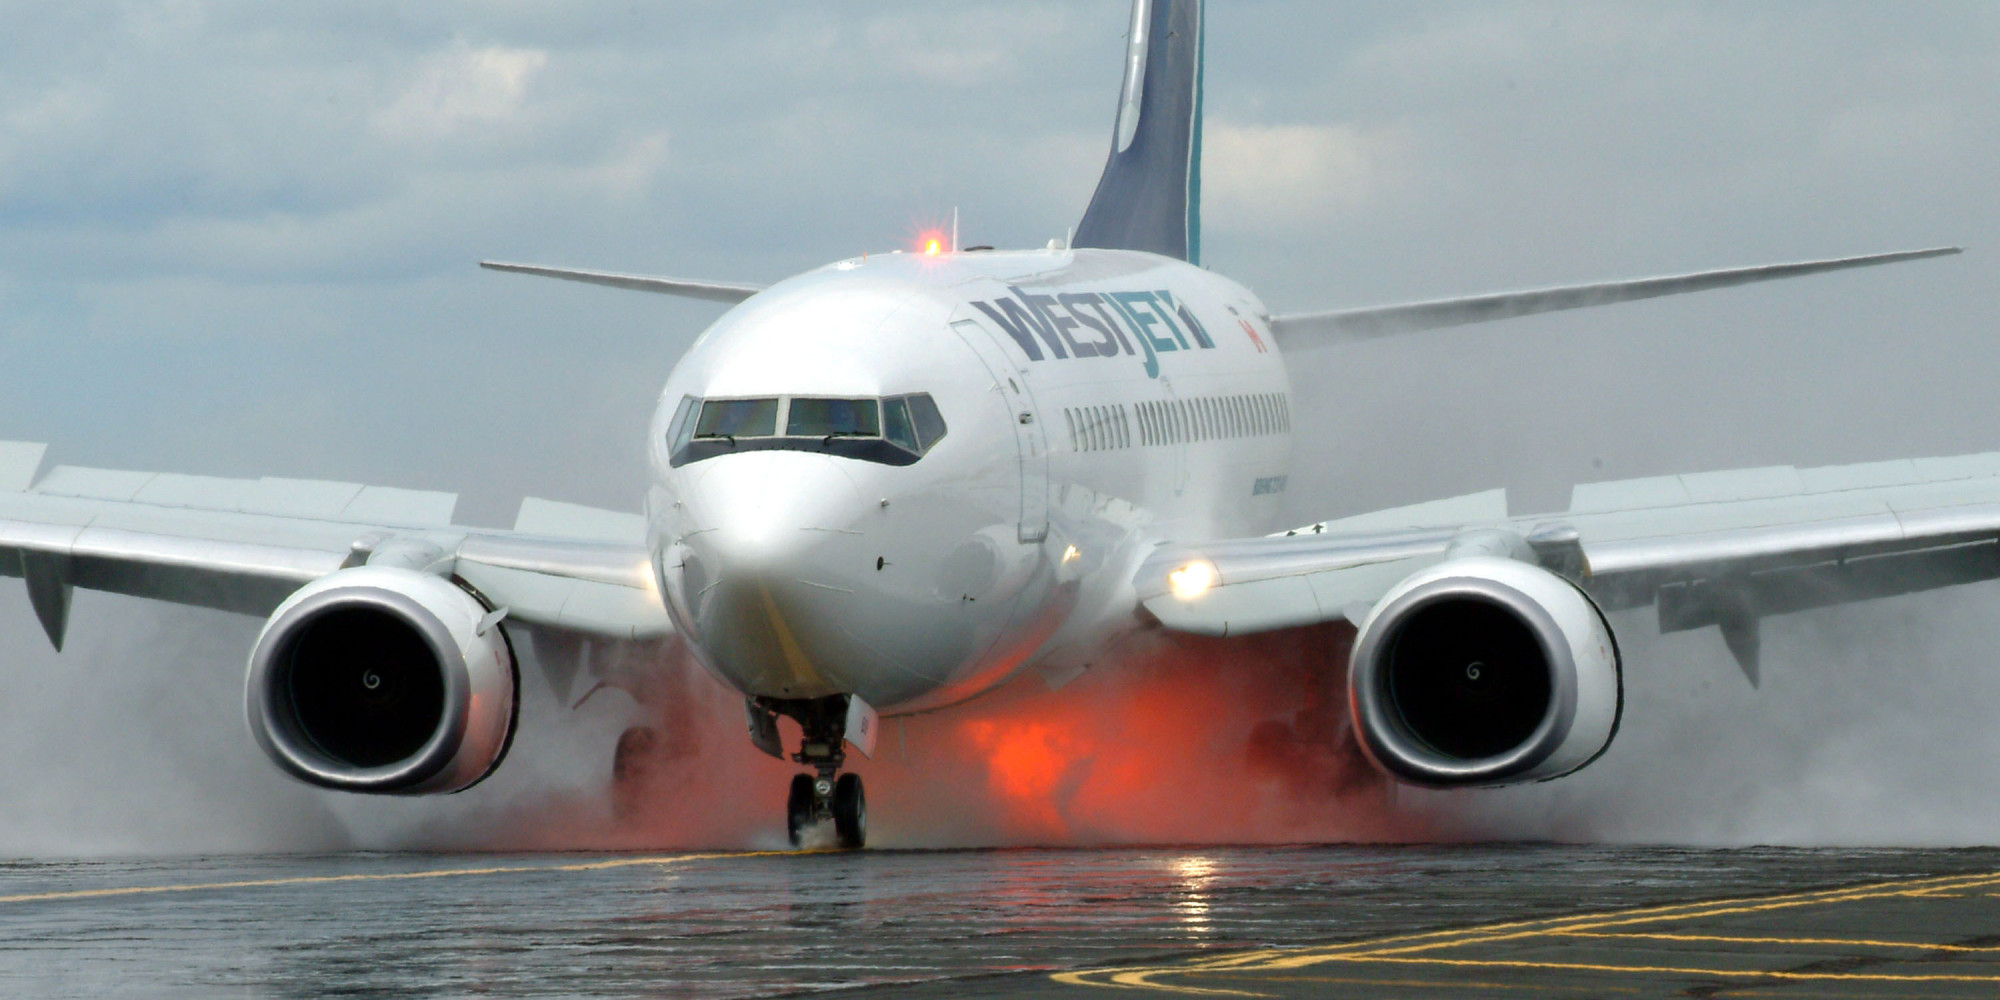 jet blue and west jet Each of these two companies have taken a risk of upgrading a full and valuable database westjet the first company to try the upgrade was unfortunate due to its poor project management study.